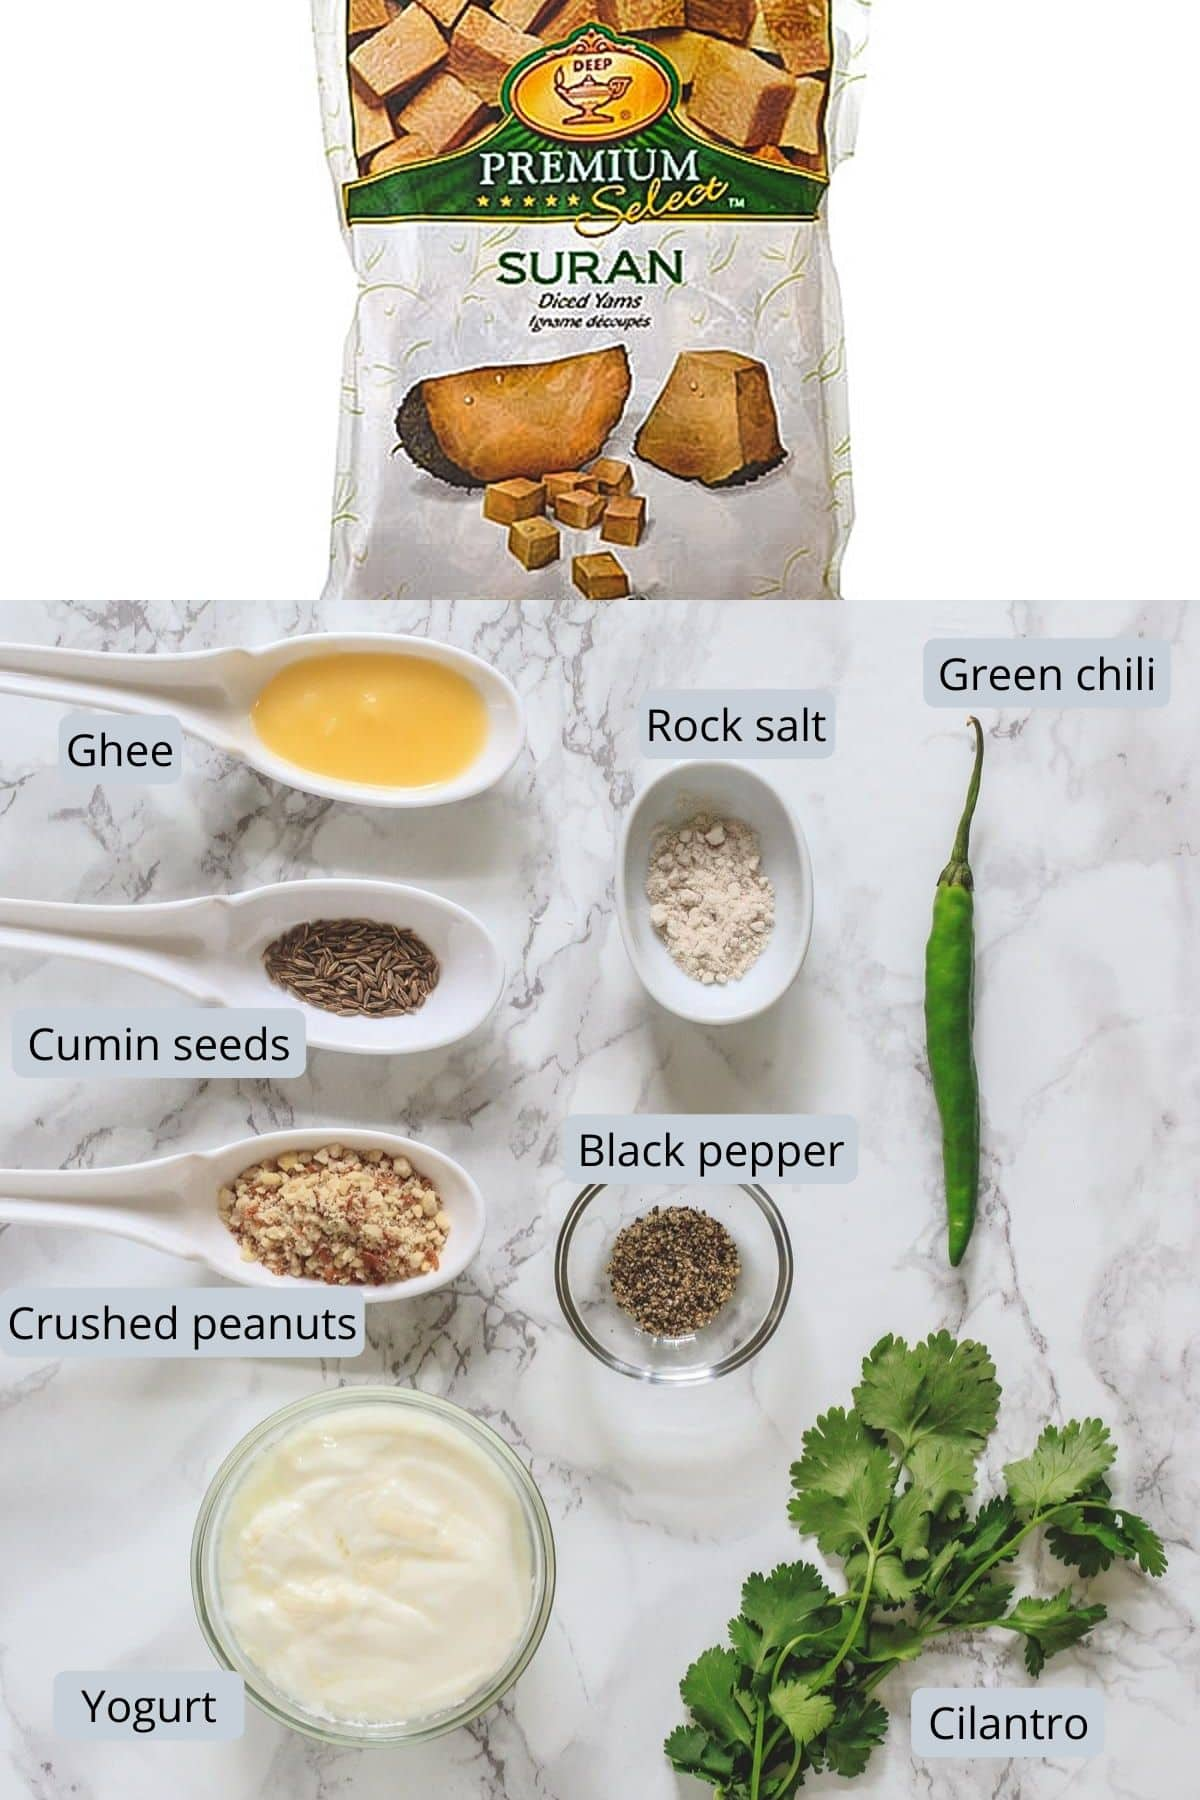 Image of ingredients used in suran sabji includes frozen suran, ghee, peanuts, salt, pepper, cumin seeds, yogurt, green chili, cilantro